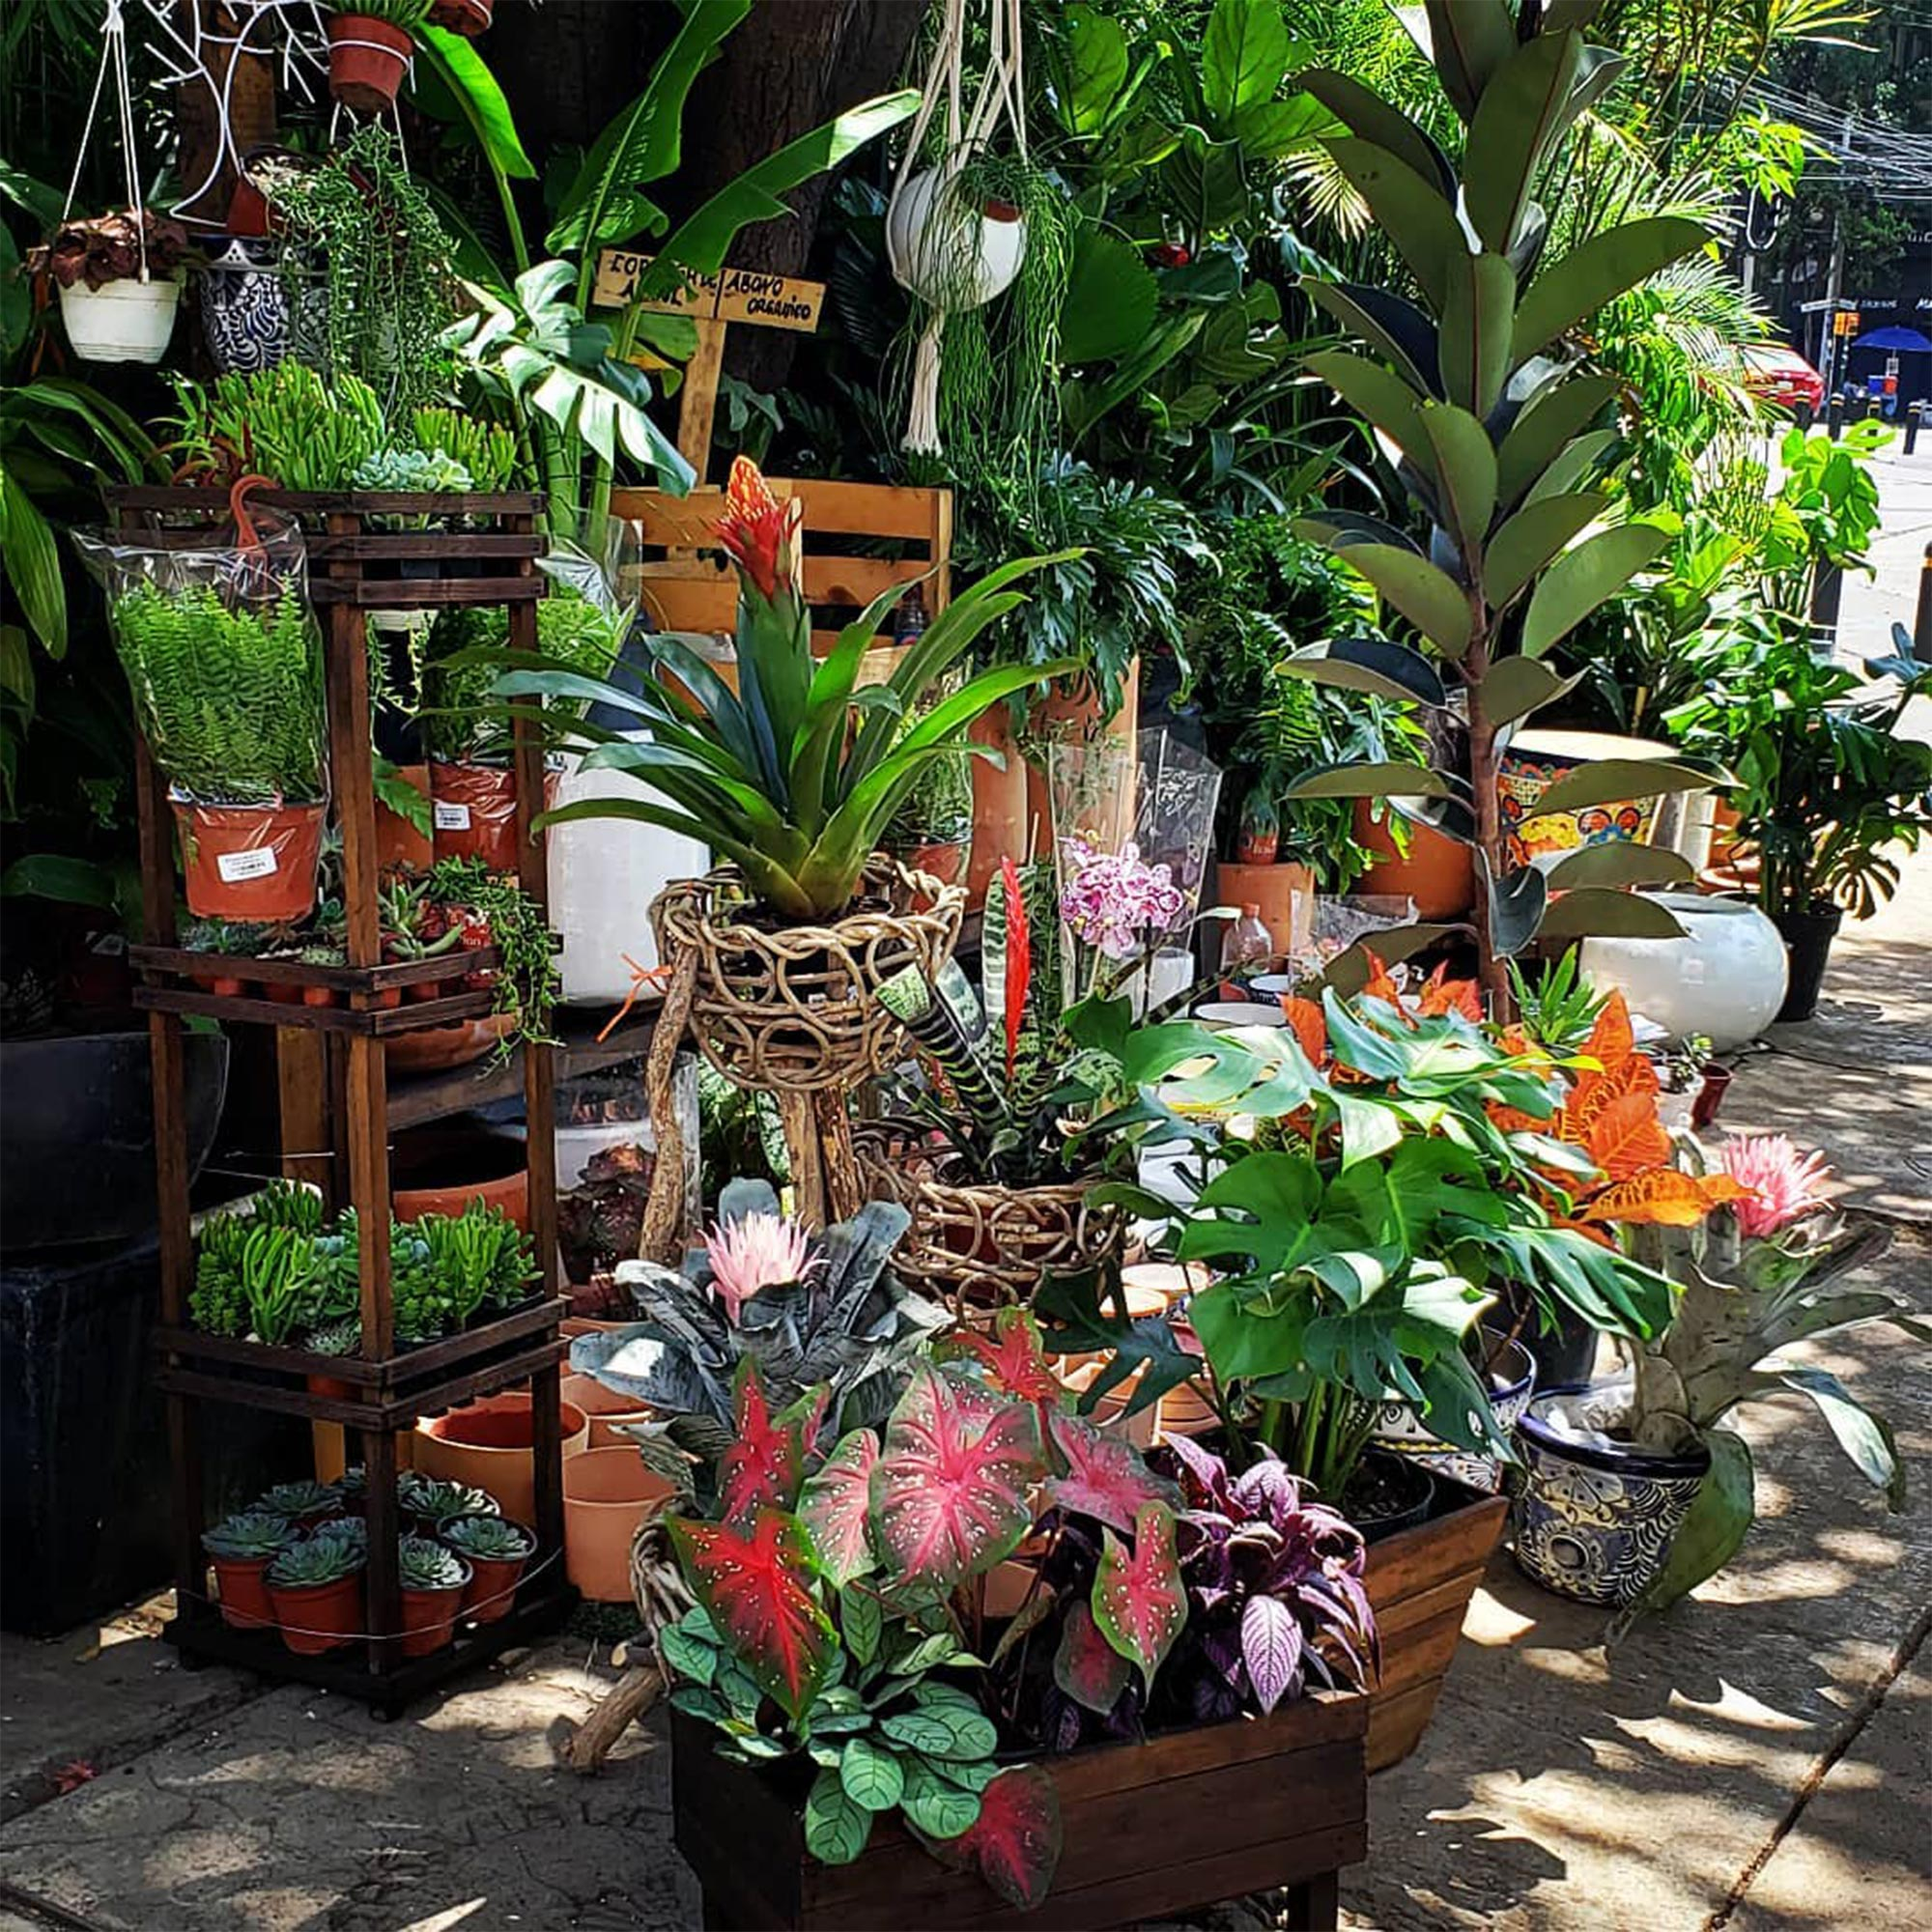 Plants by Madre Tierra at their stand in Roma neighborhood in Mexico City